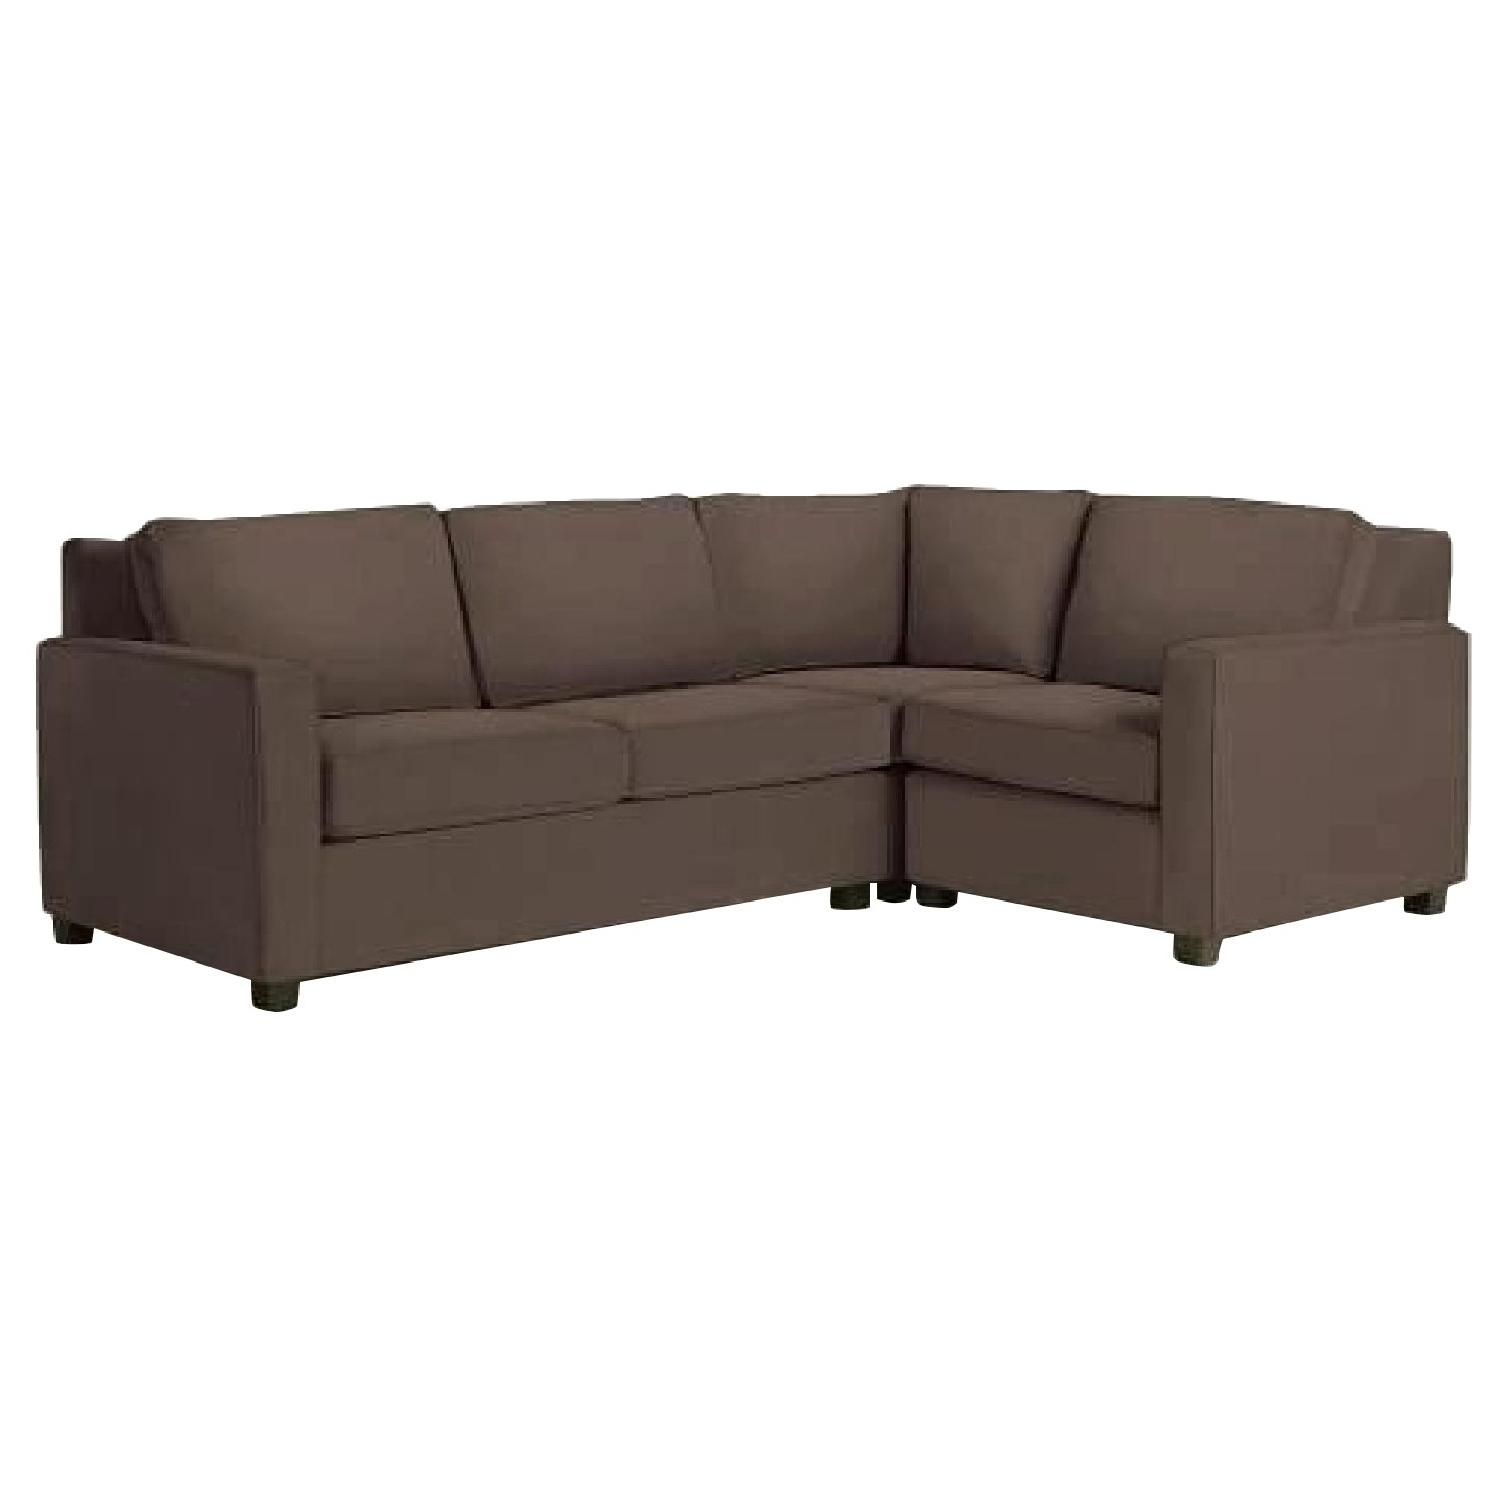 West Elm Henry 3-Piece Sectional Sofa in Espresso